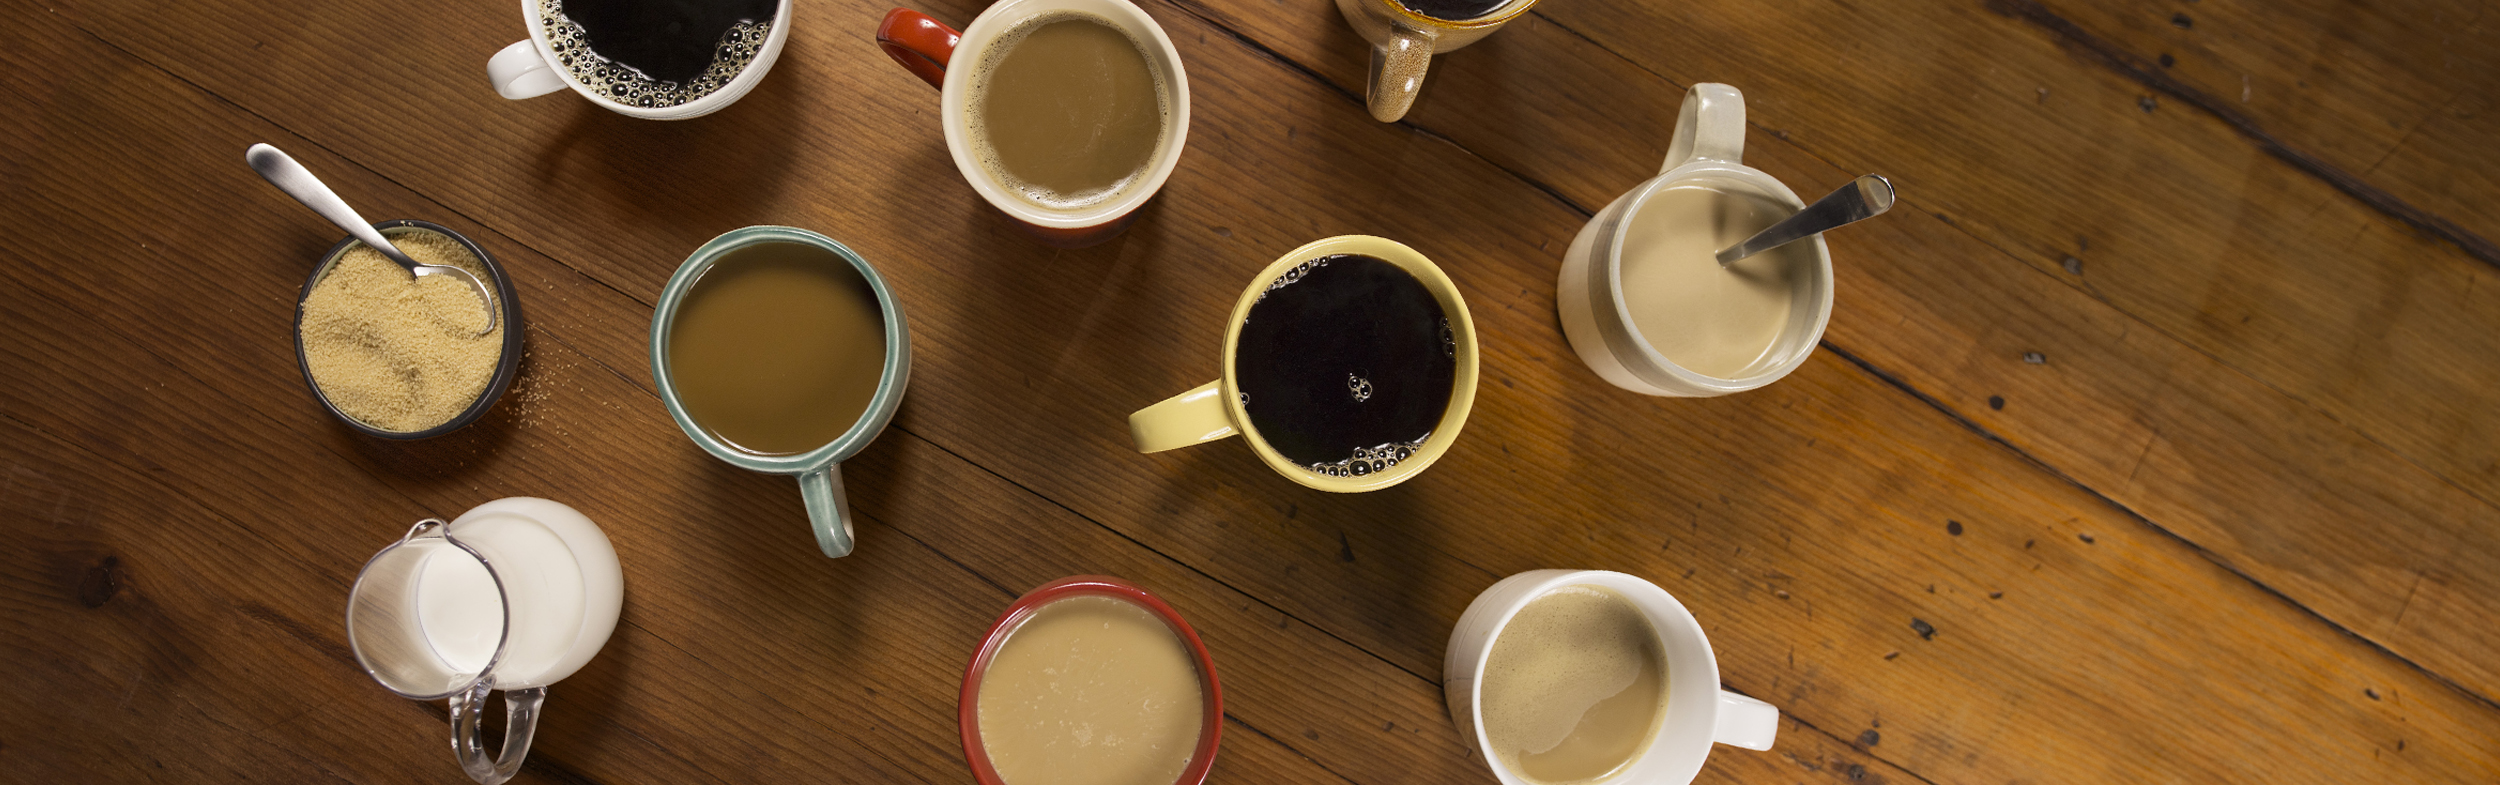 table with coffee cups